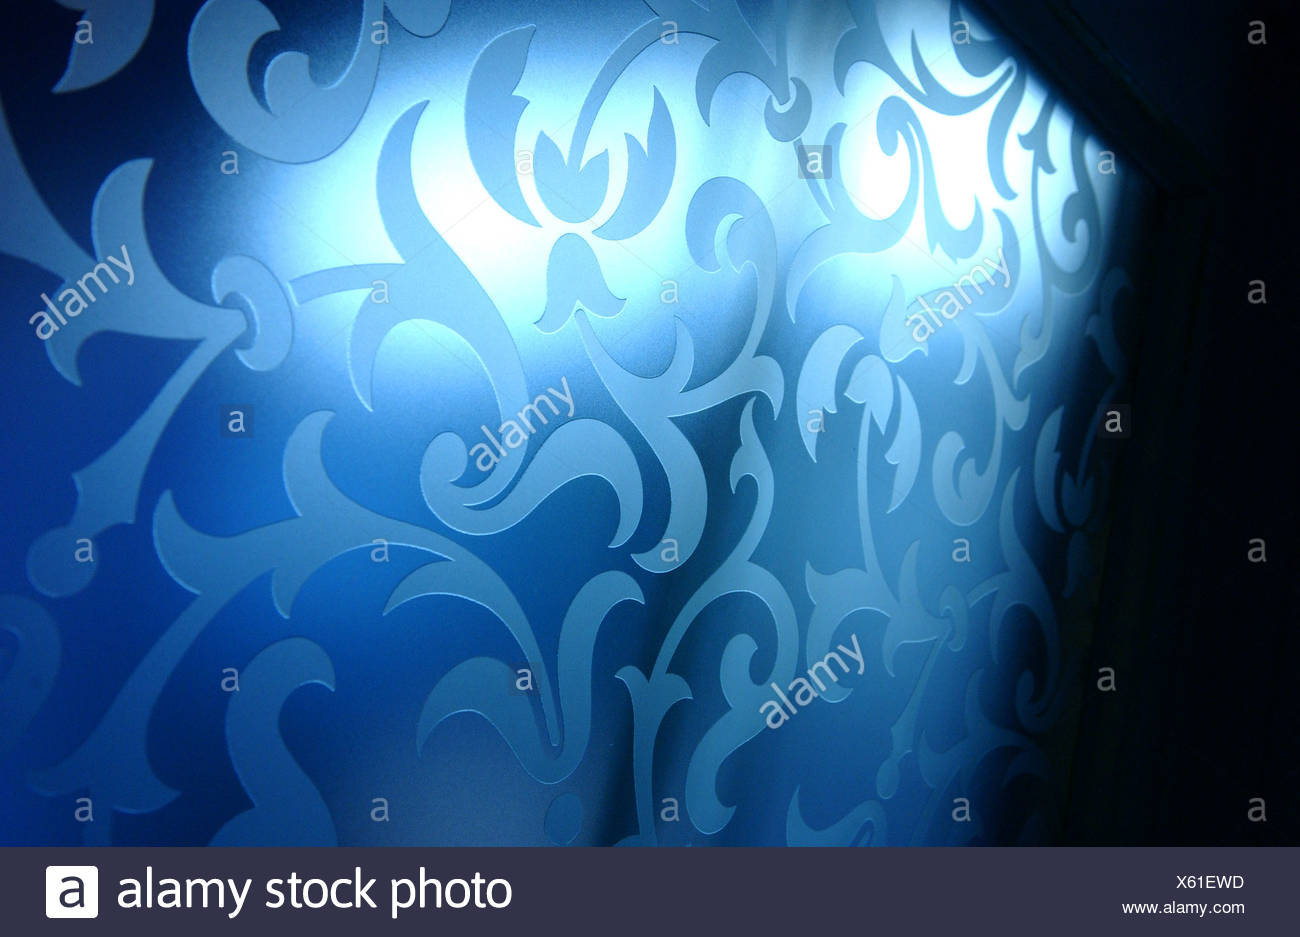 Berlin, glass with floral motifs - Stock Image